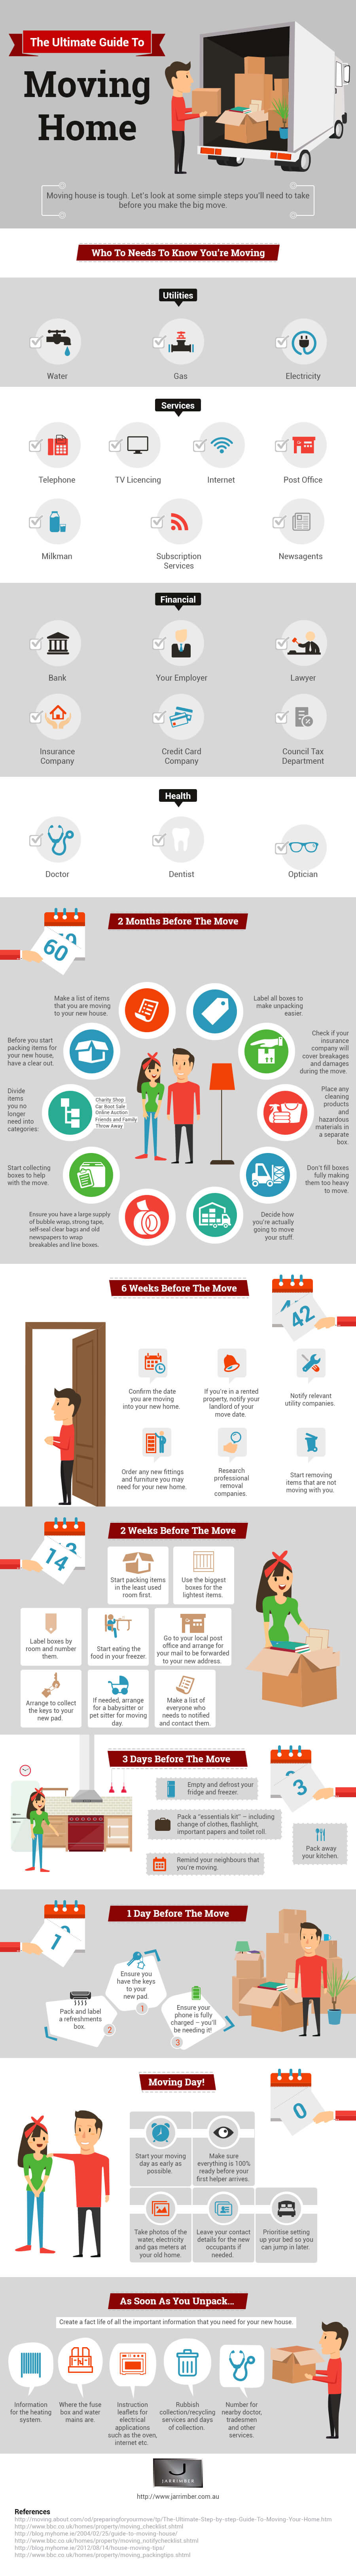 The-Ultimate-Guide-To-Moving-Home-infographic-plaza